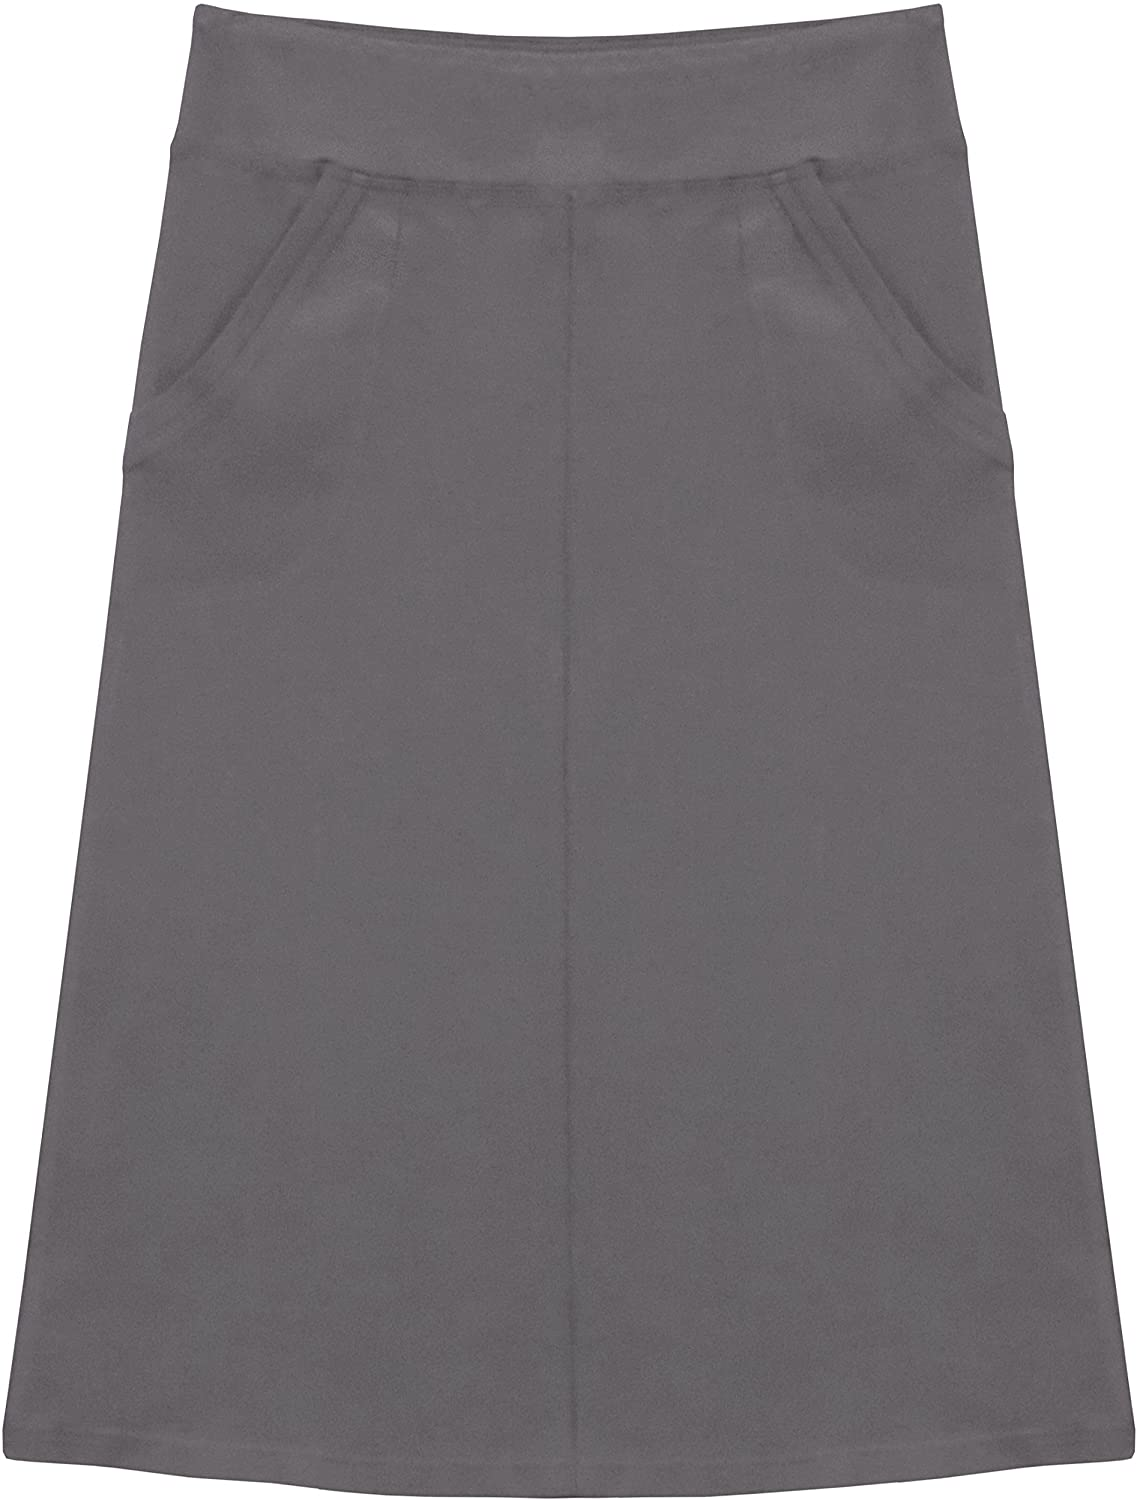 Baby'O Girl's (Children's) Stretch Cotton Knit Panel Below The Knee Skirt